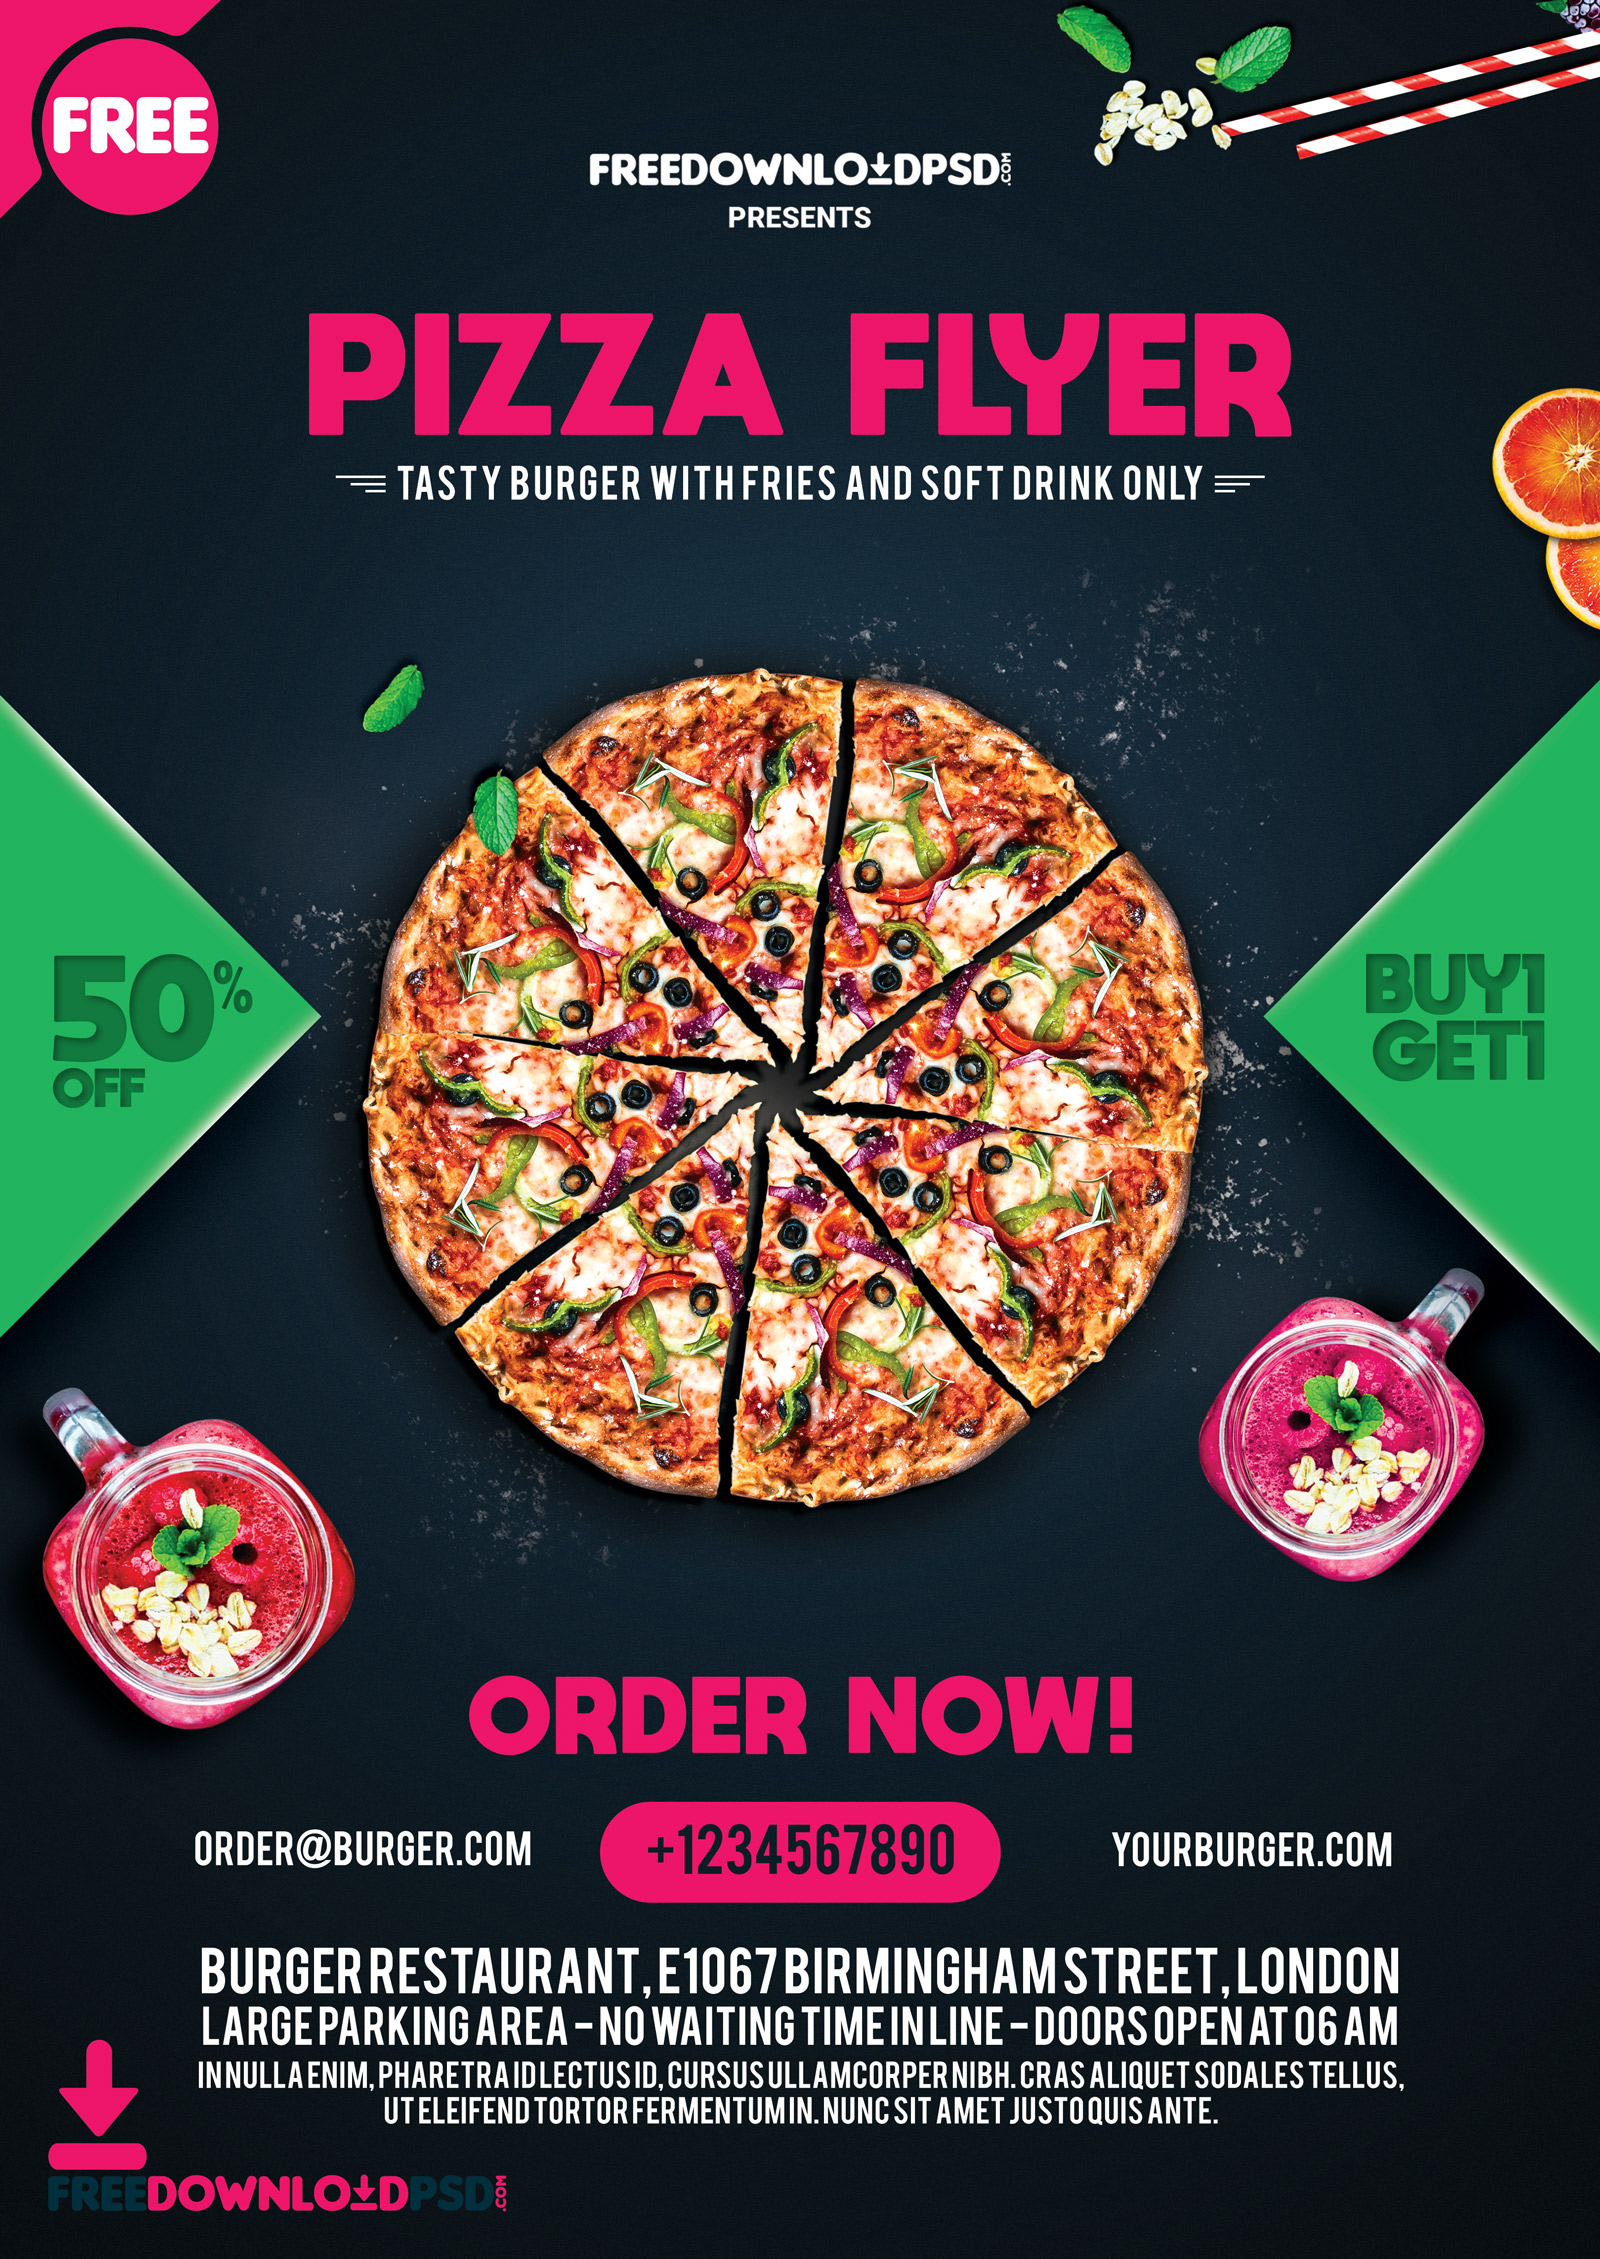 Pizza Flyer Free Template PSD